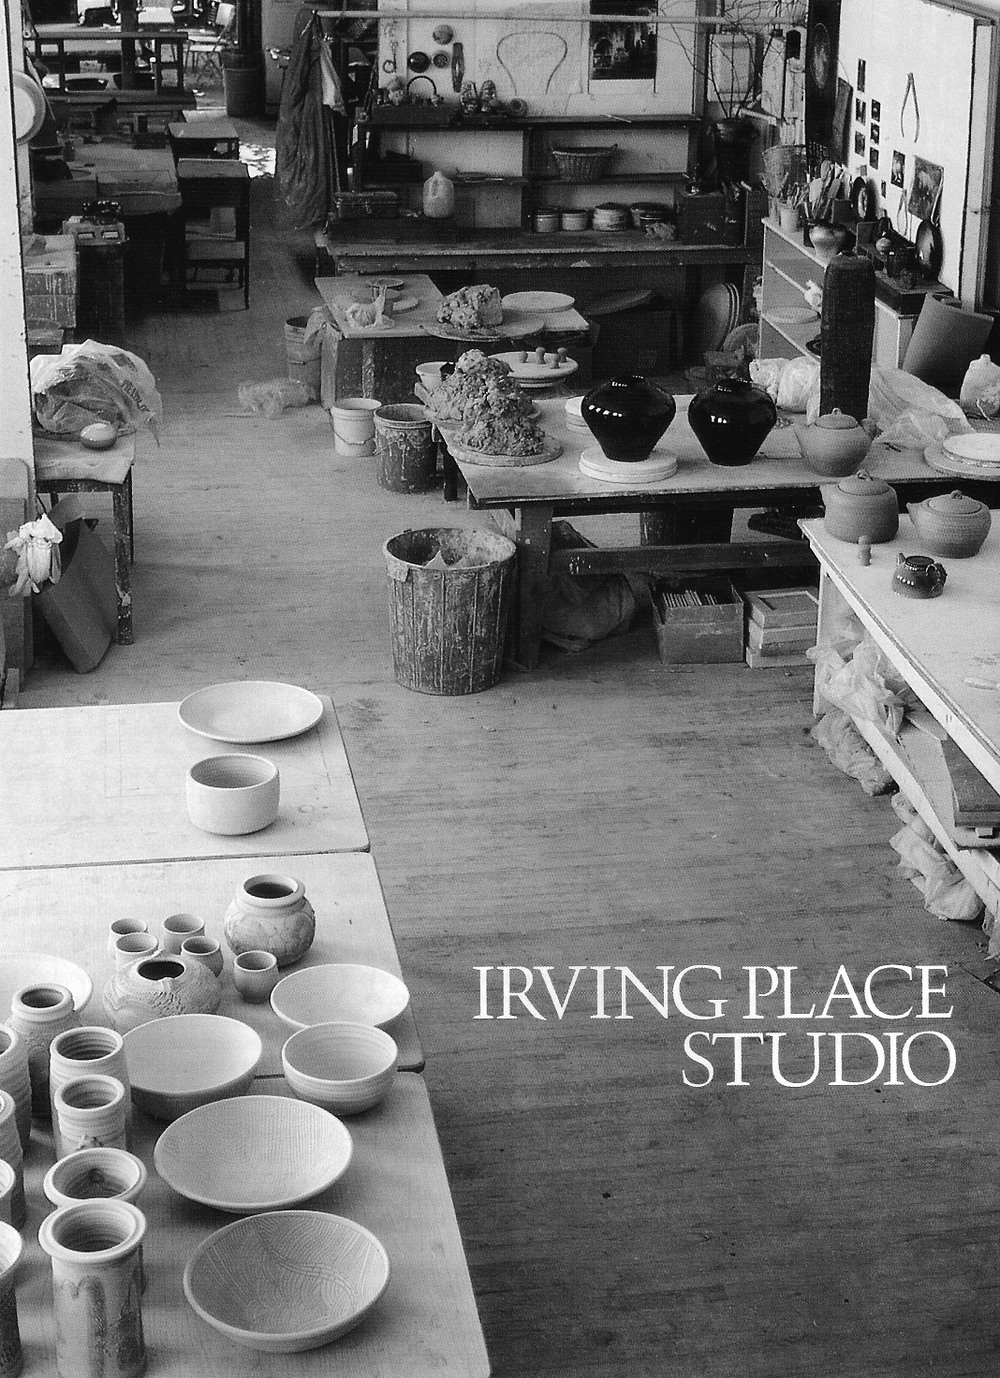 Irving_Place_Studio_American_Craft_Magazine_JuneJuly1981_StudioShot_Cropped.jpg